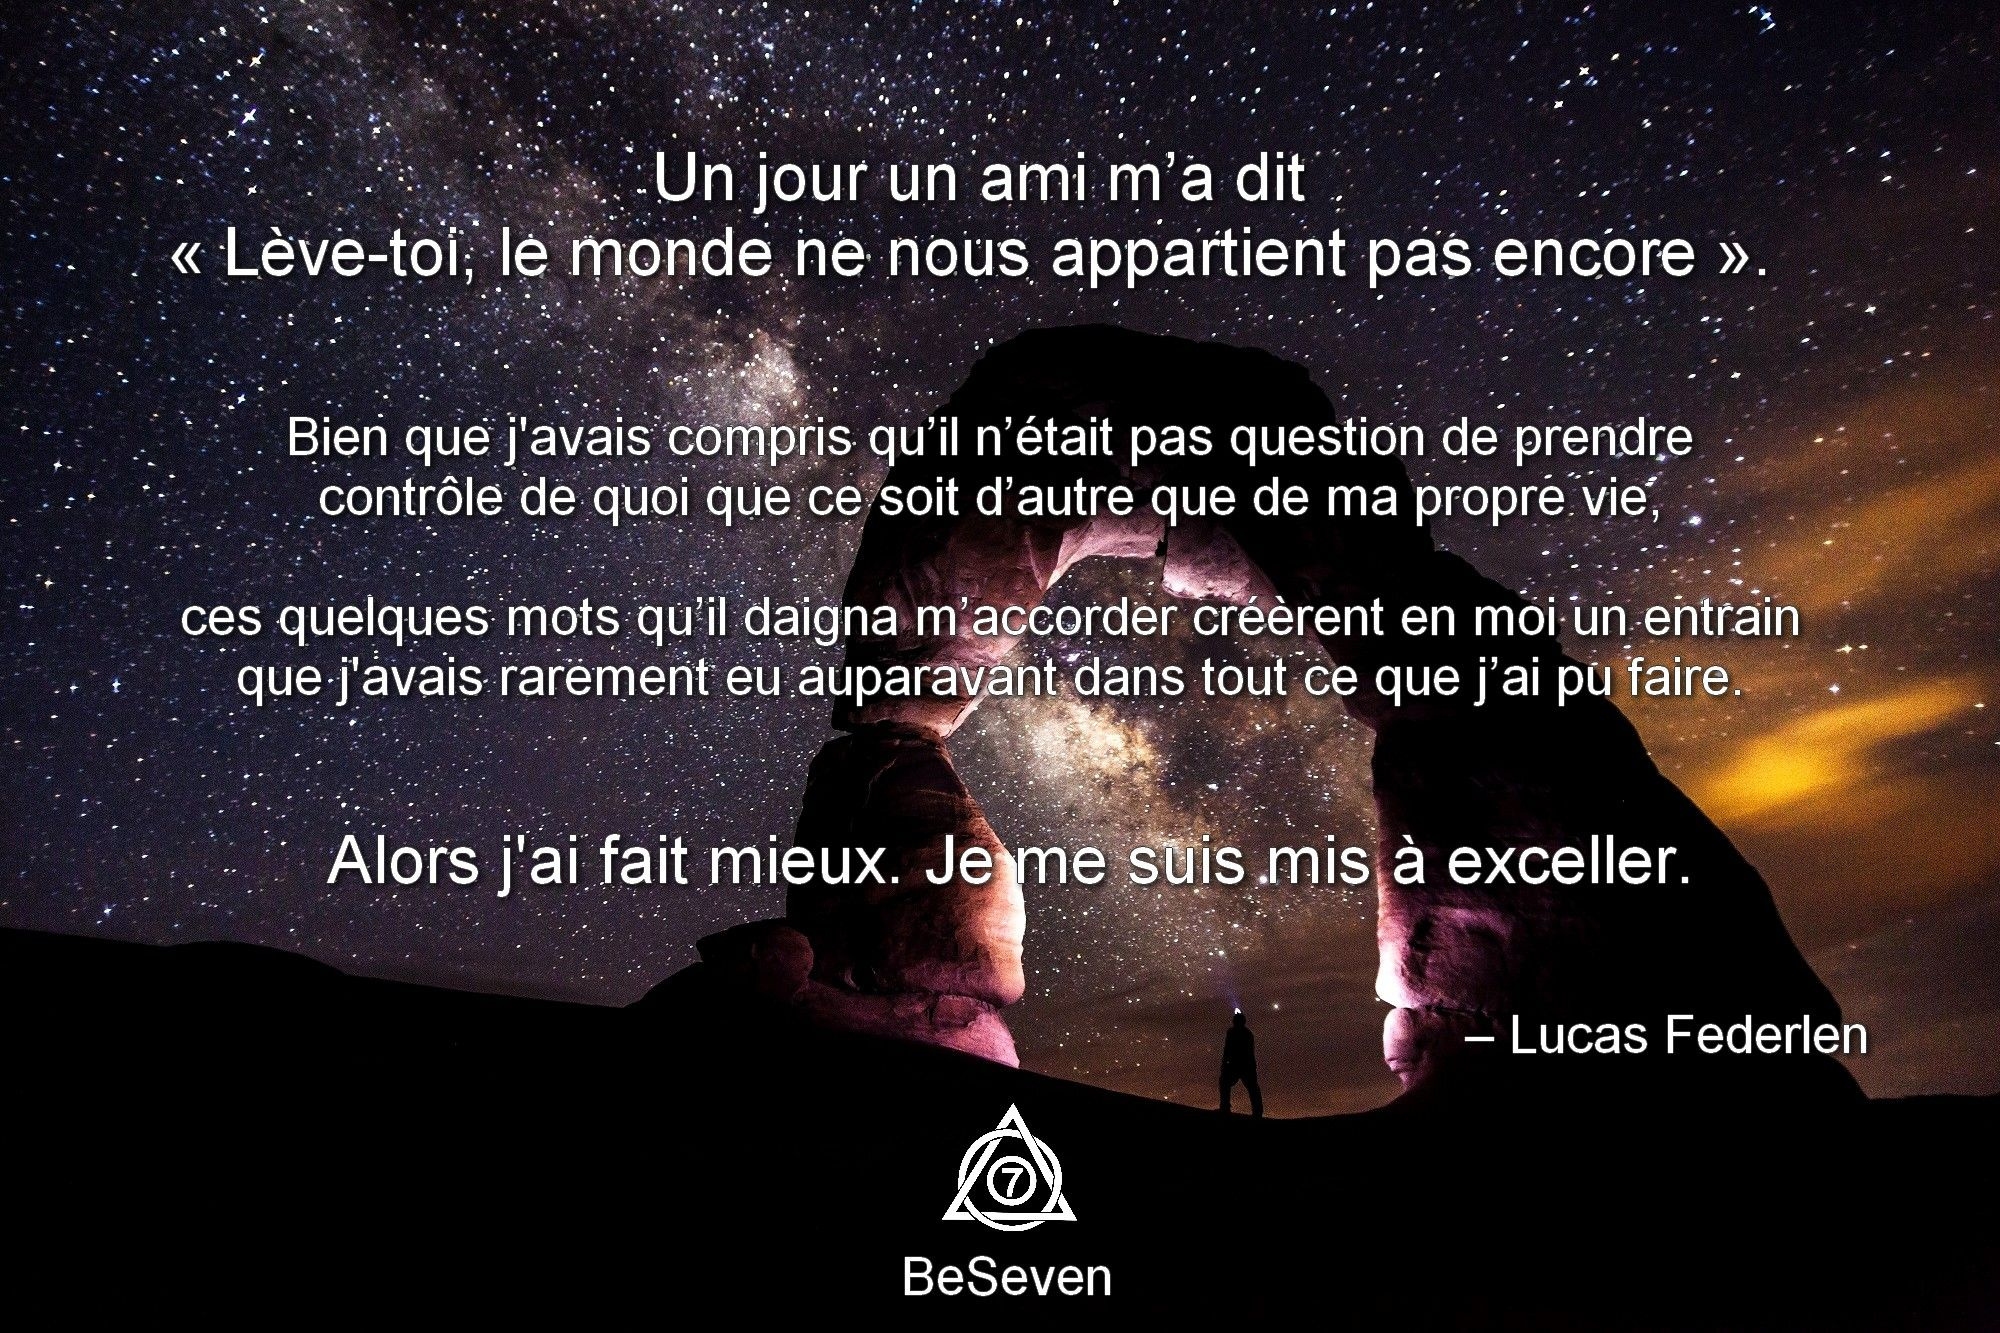 Citation de Lucas Federlen qui illustra parfaitement la philosophie de BeSeven